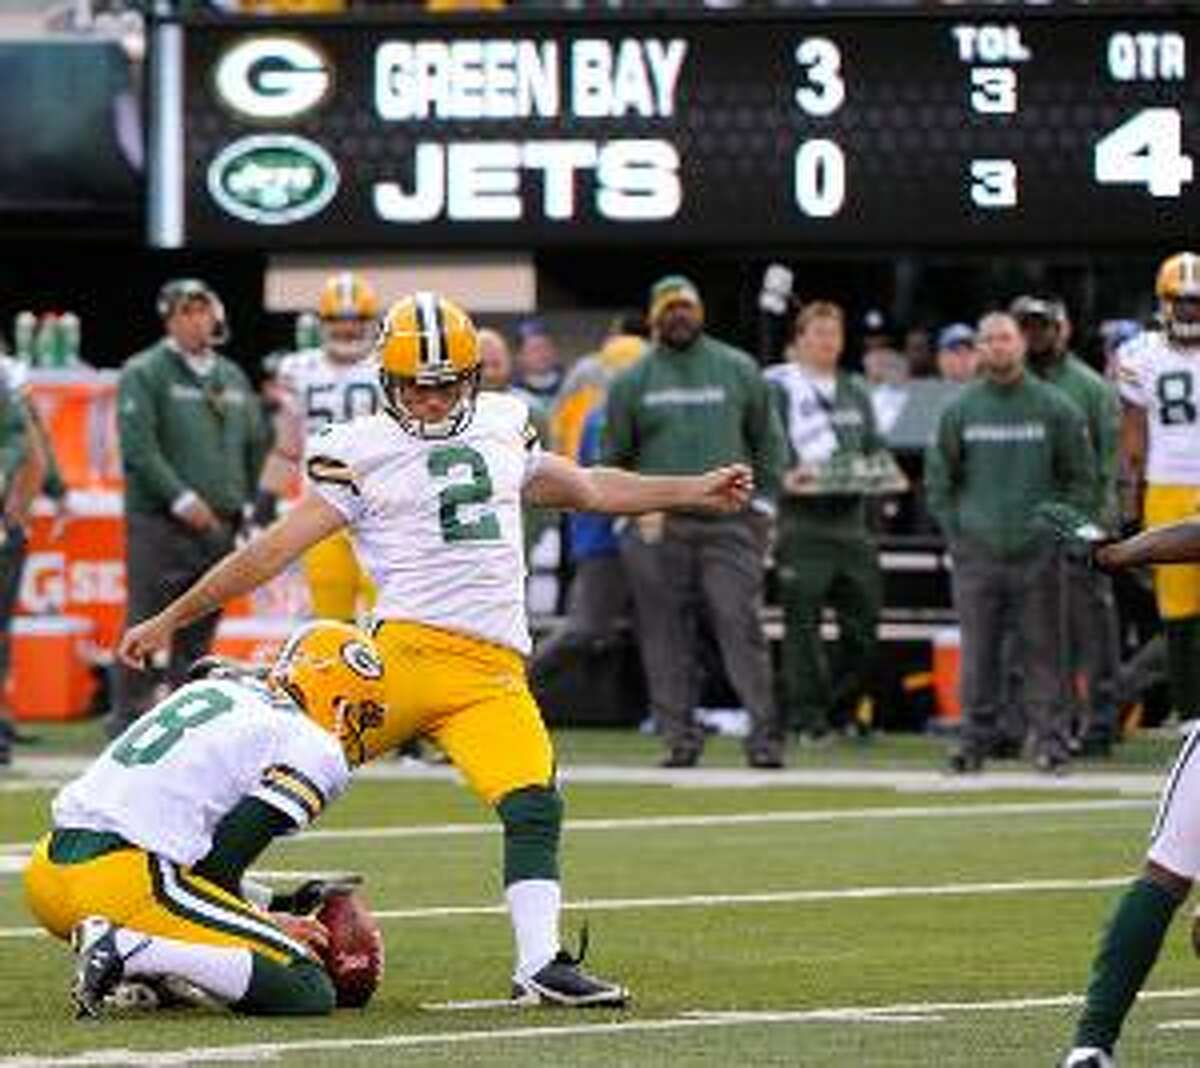 AP Green Bay Packer kicker Mason Crosby (2) boots a field goal during the fourth quarter of Sunday's game against the New York Jets at New Meadowlands Stadium in East Rutherford, N.J. The Packers won 9-0. (AP Photo/Bill Kostroun)